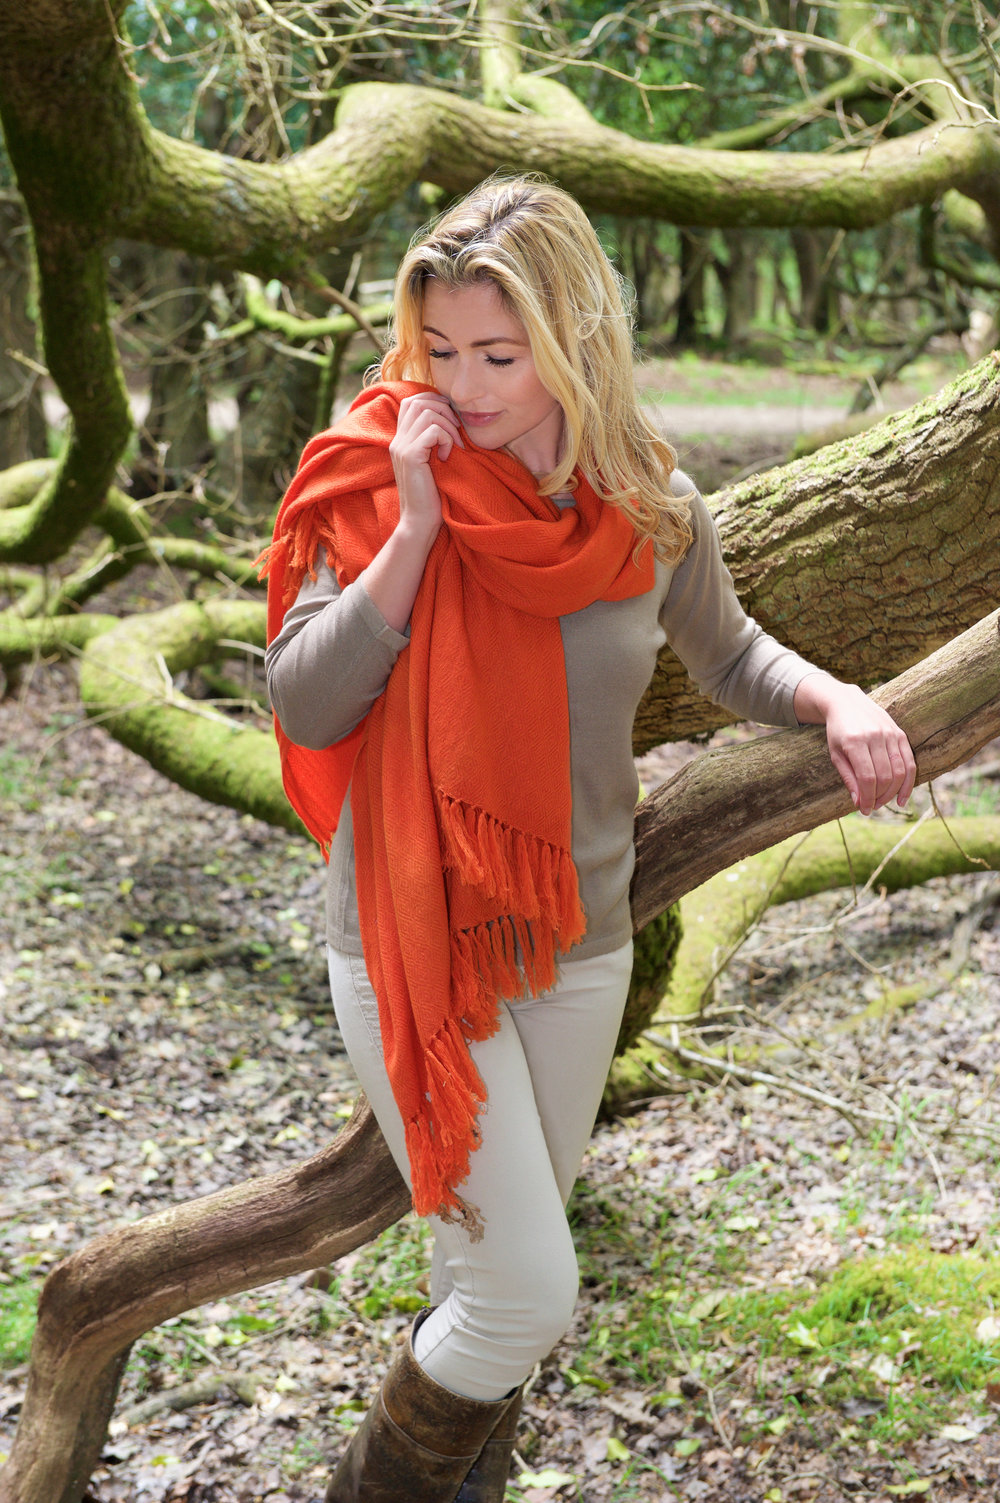 Wraps - From the finest gossamer stoles to warm and snug winter wraps and shawls, our beautiful handwoven cashmere is suitable for all seasons.